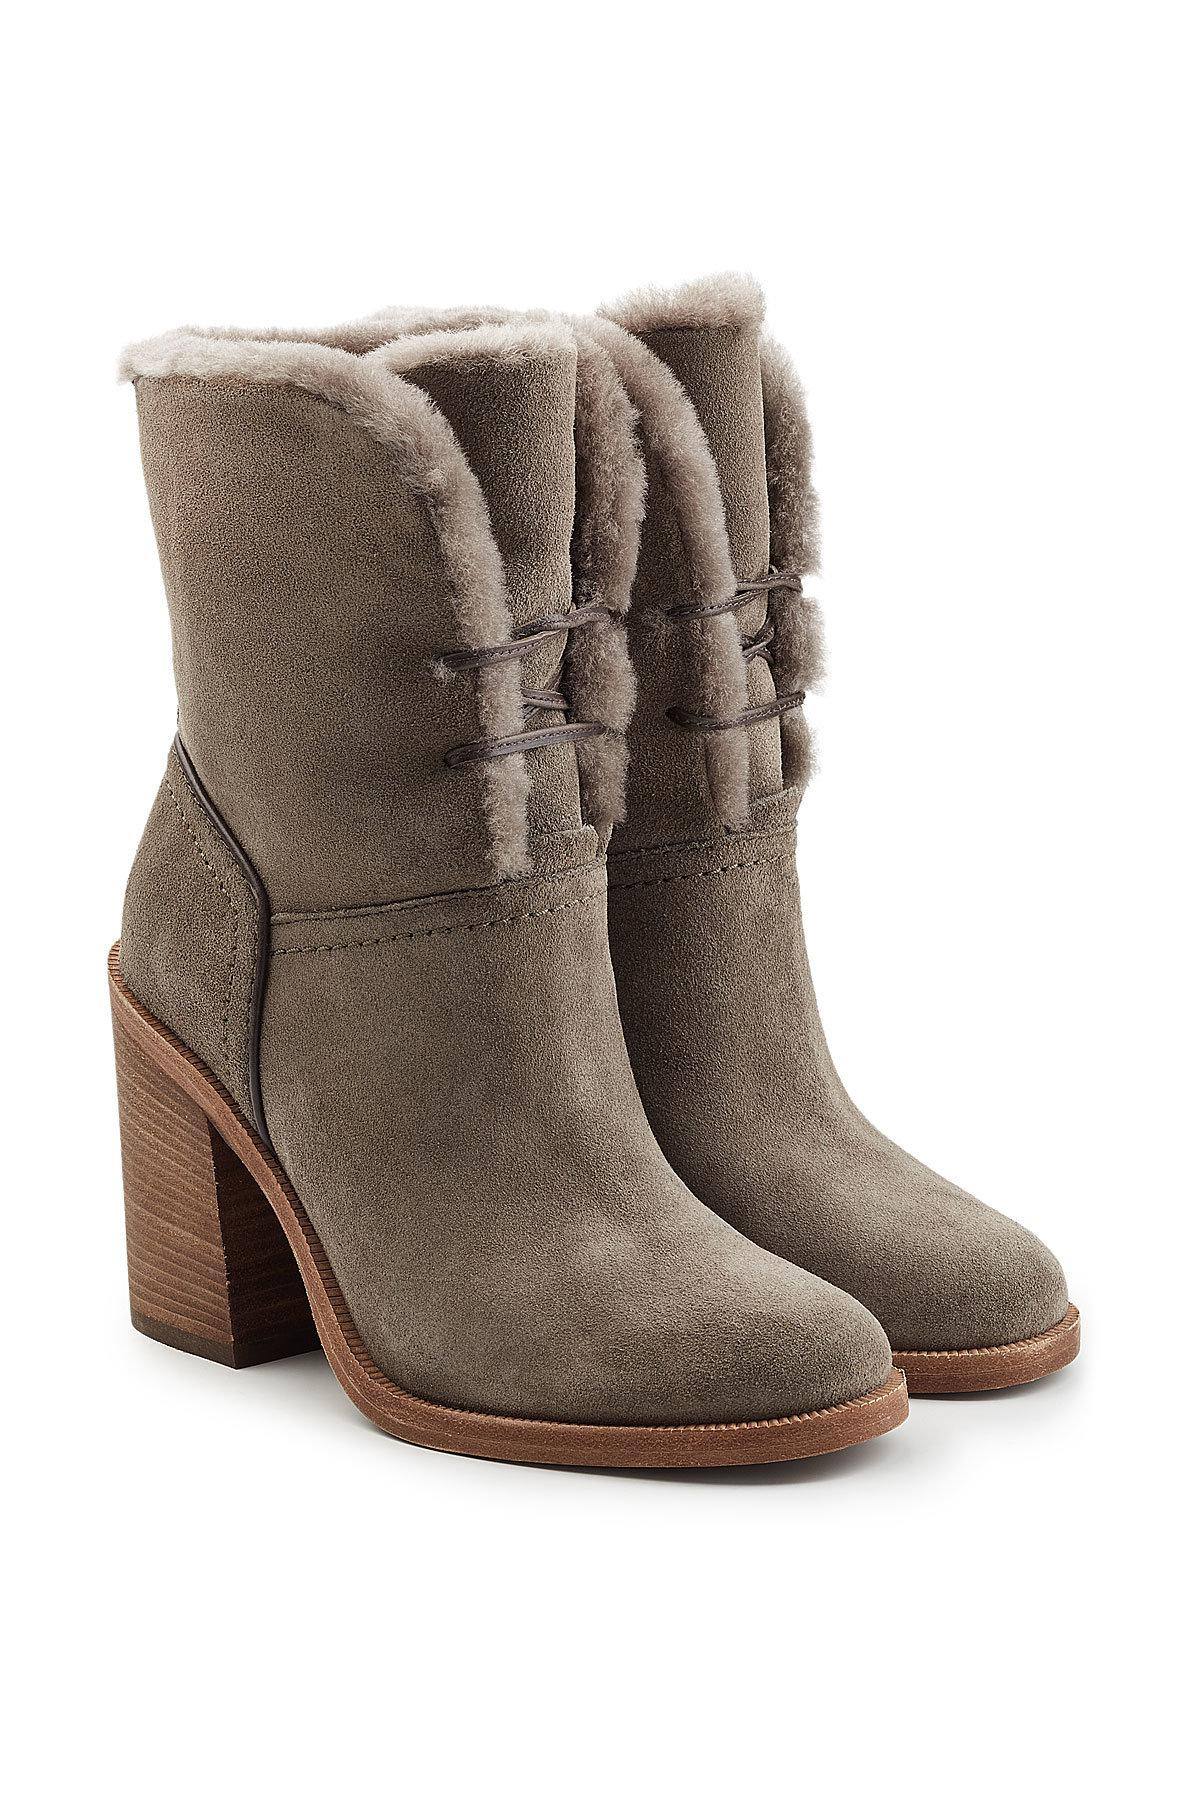 UGG Jerene suede ankle boots Cheap Sale Footlocker Finishline Clearance Latest Collections Explore Sale Online Discount Extremely Shopping Online With Mastercard 36Ir81Gk